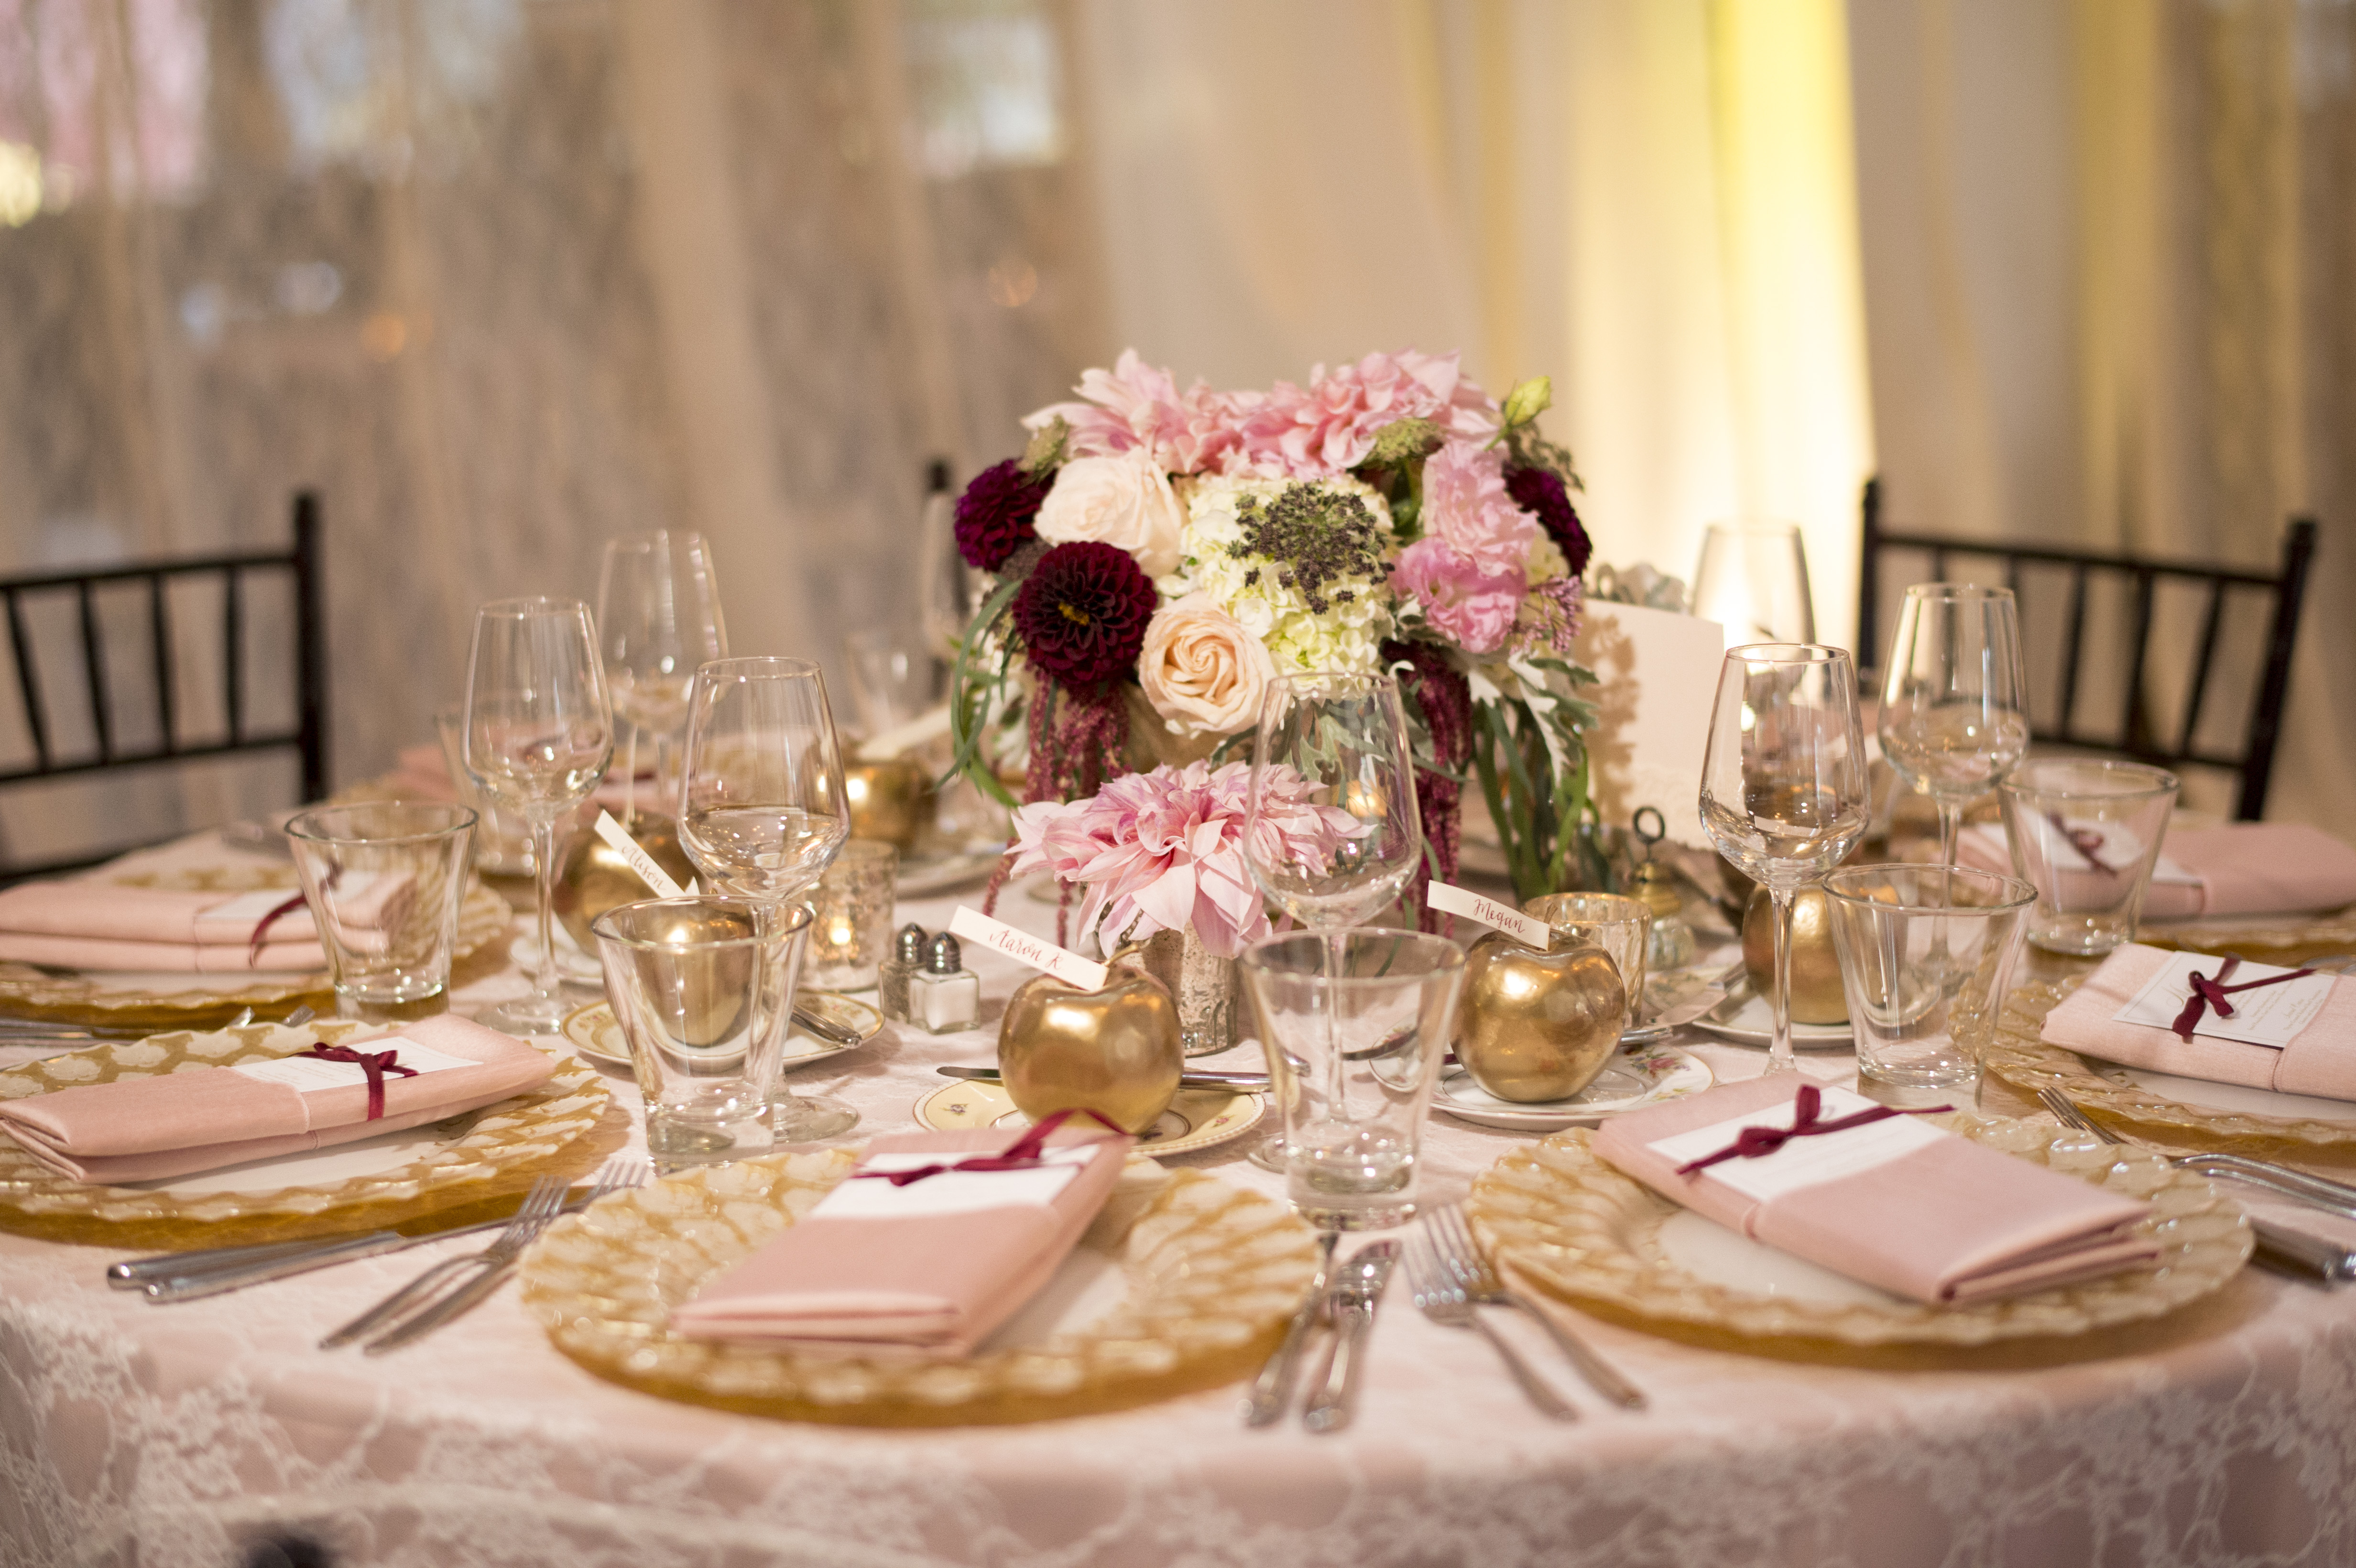 Sodo Park Wedding in Seattle | Elegant reception tables with gold chargers, lace and pink linens, and burgundy, pink, and cream floral centerpieces | Perfectly Posh Events | Kimberly Kay Photography | Floressence